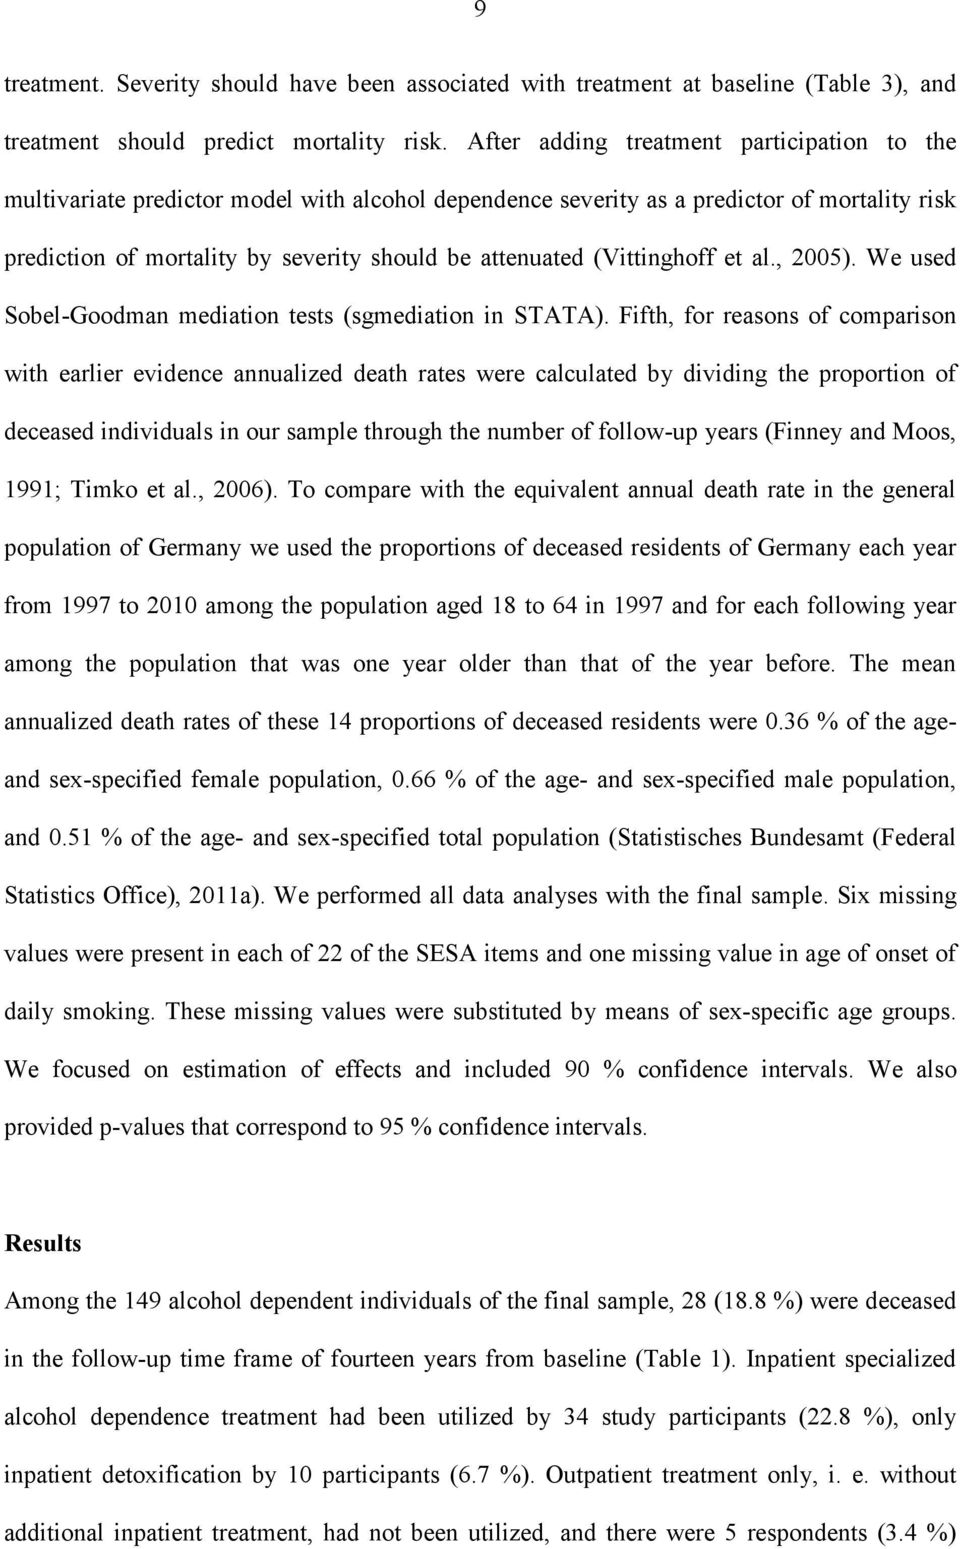 (Vittinghoff et al., 2005). We used Sobel-Goodman mediation tests (sgmediation in STATA).